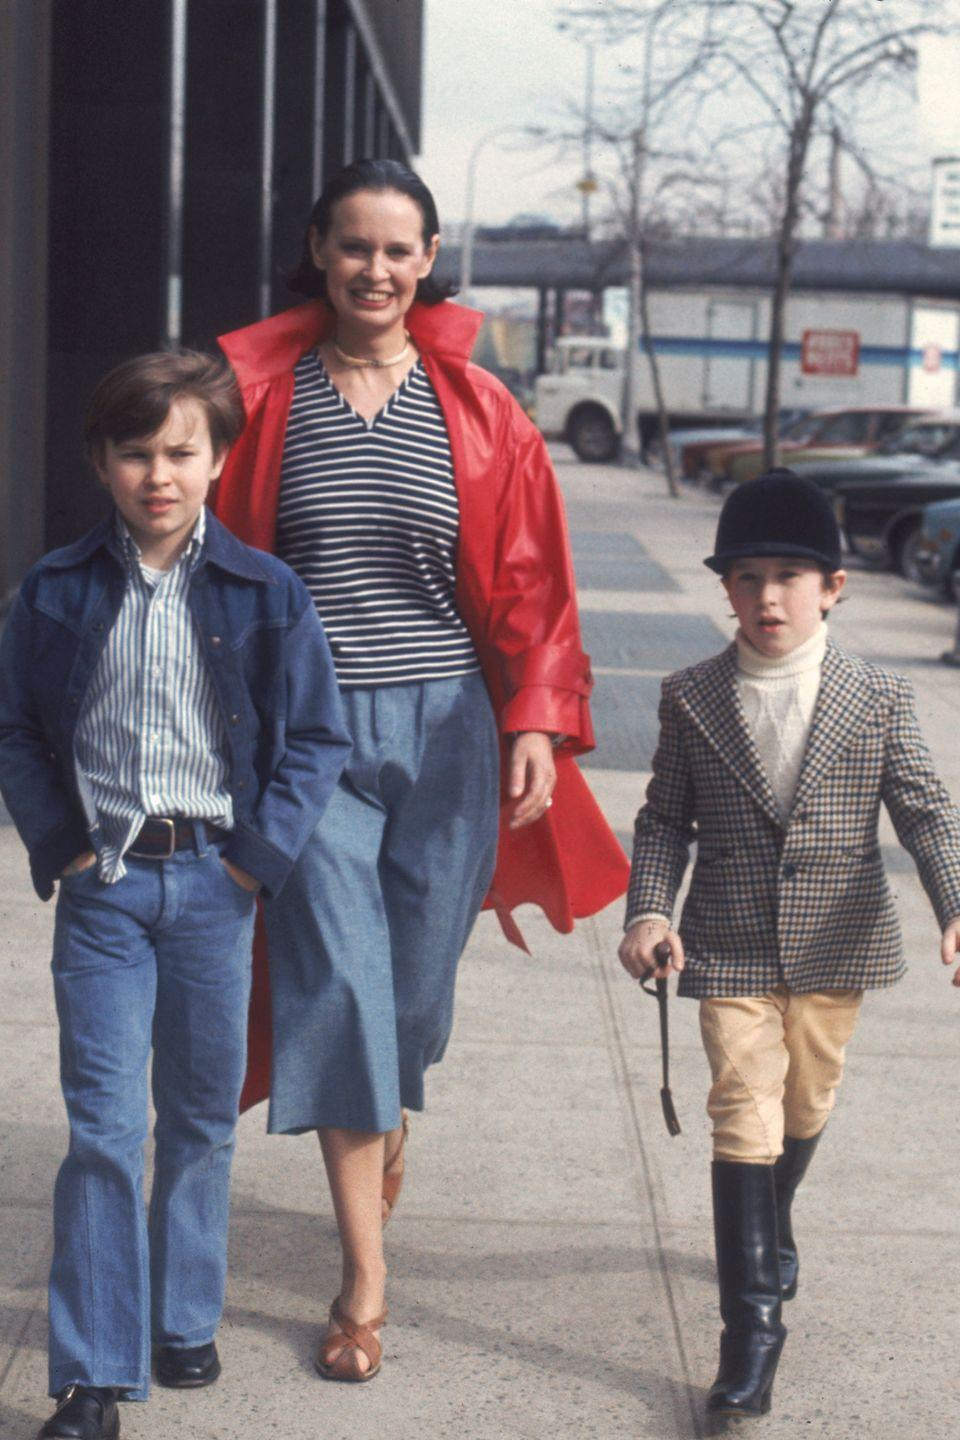 <p>Vanderbilt and her sons, Carter and Anderson, in New York City. </p>